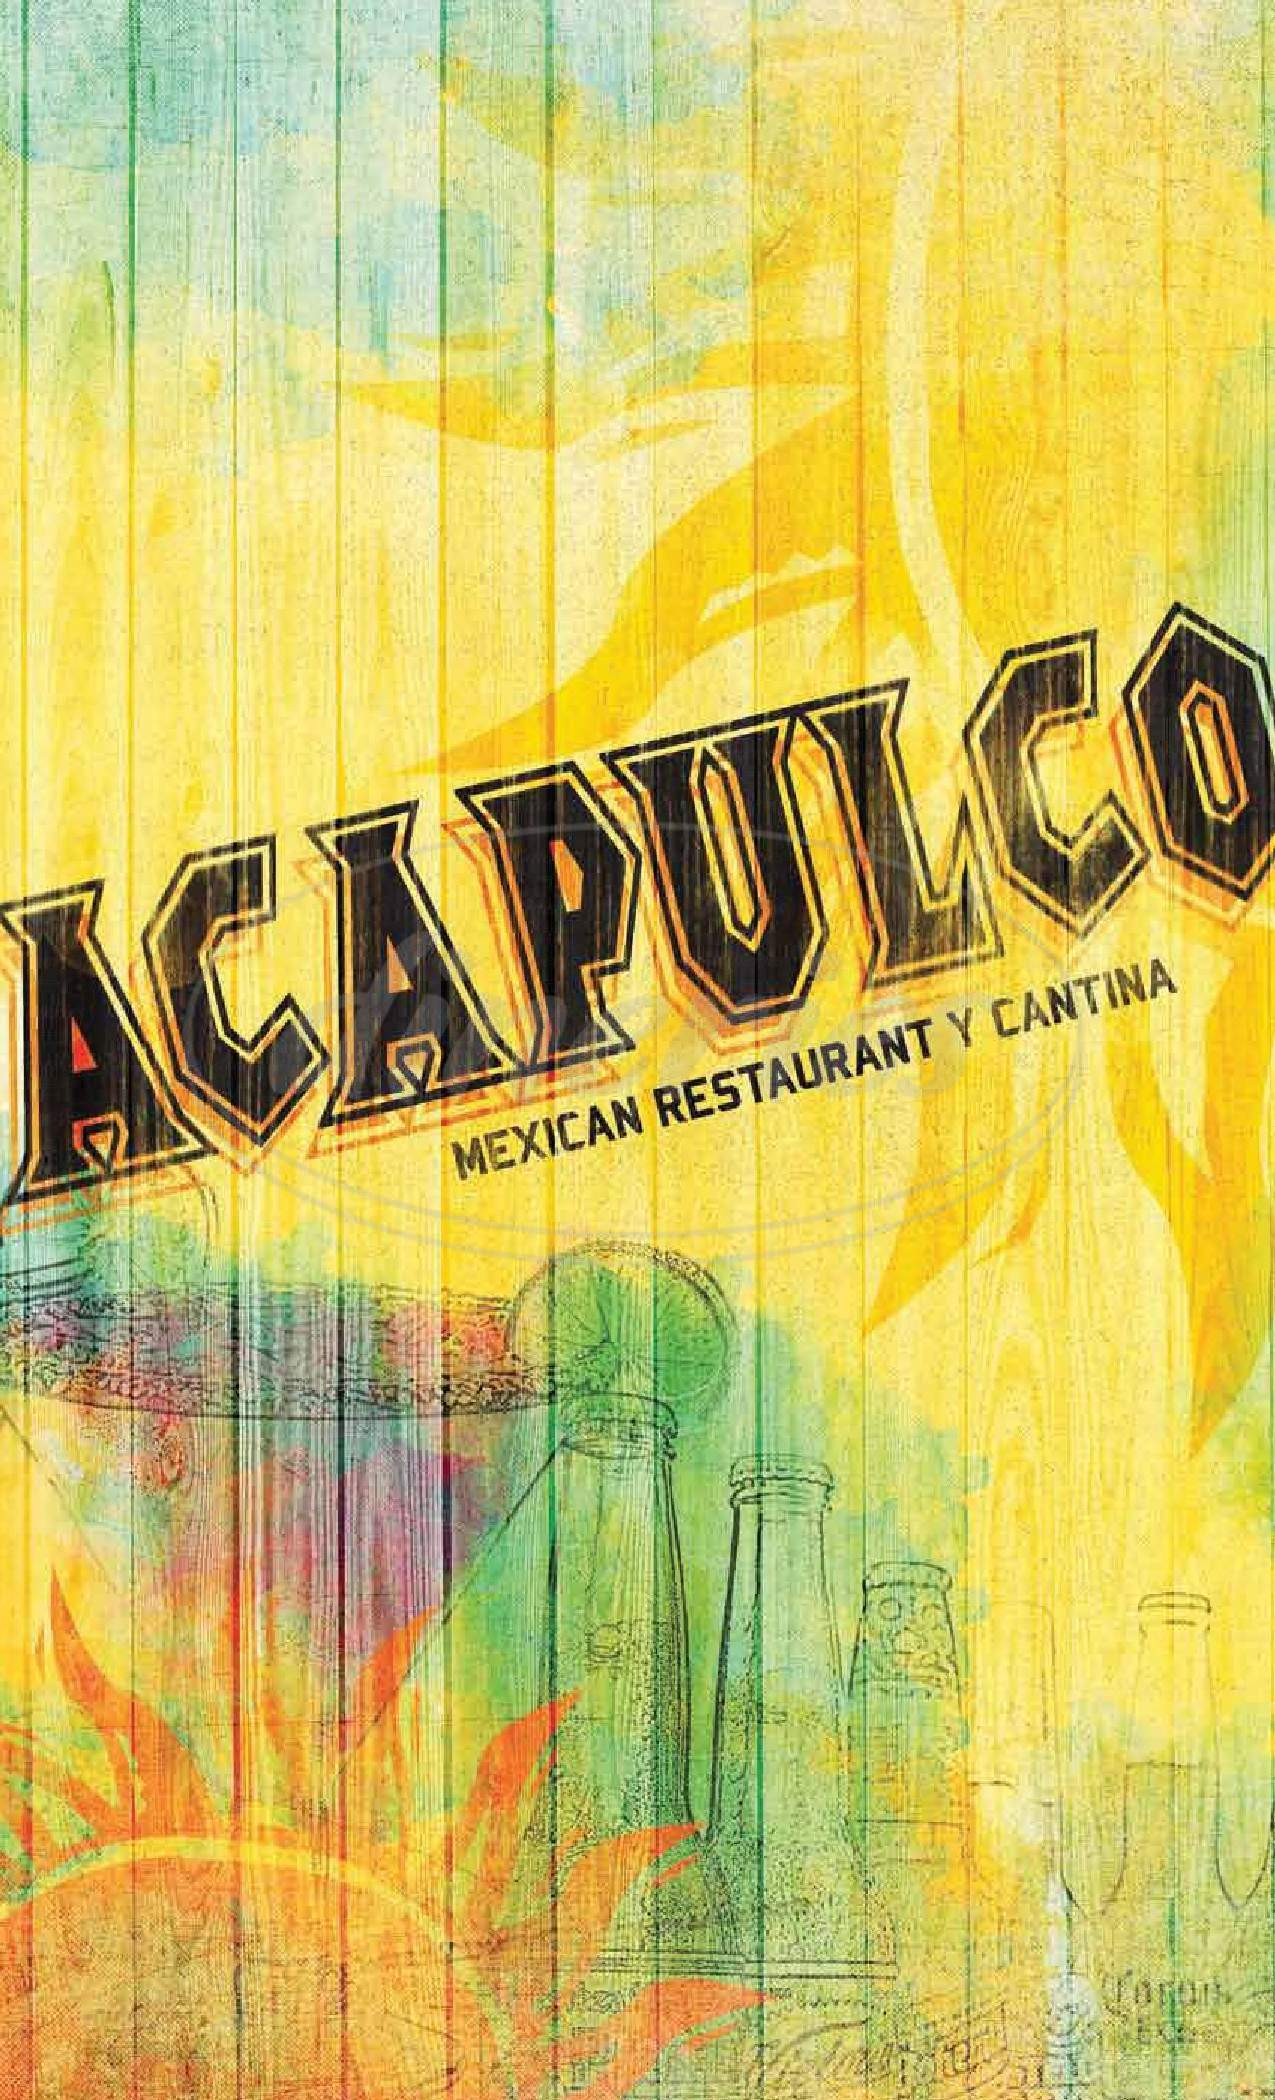 menu for Acapulco Mexican Restaurant